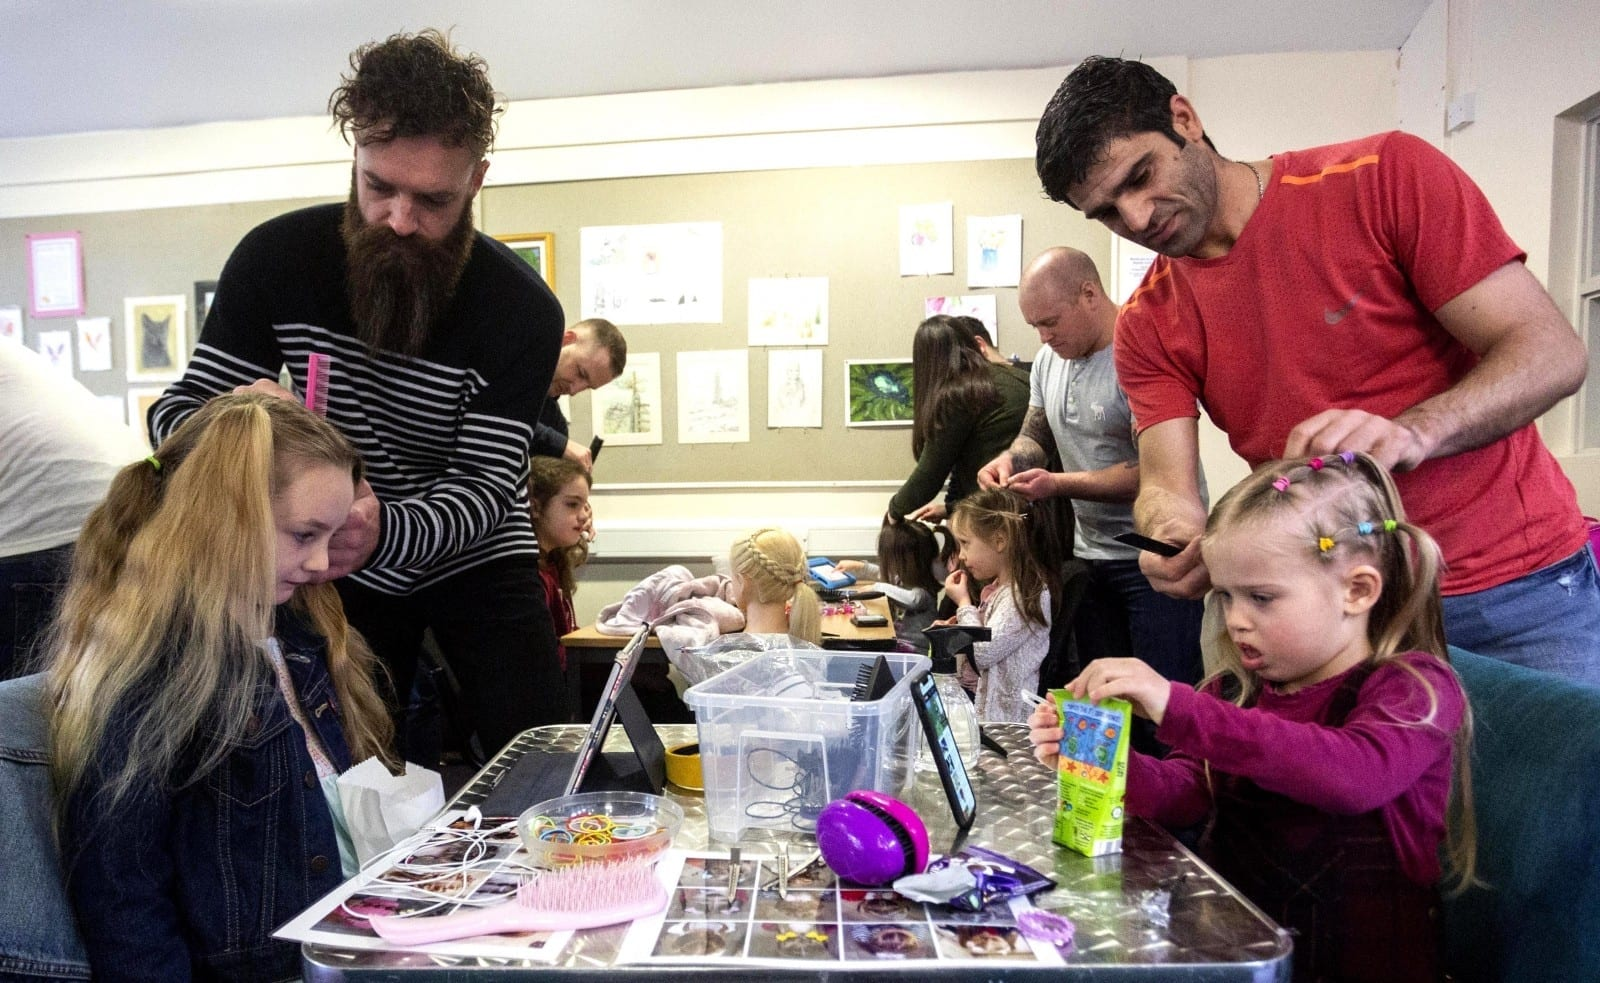 How About Plait? – Dad Is Encouraging Fathers & Daughters To Bond – By Teaching Dads How To Plait Hair